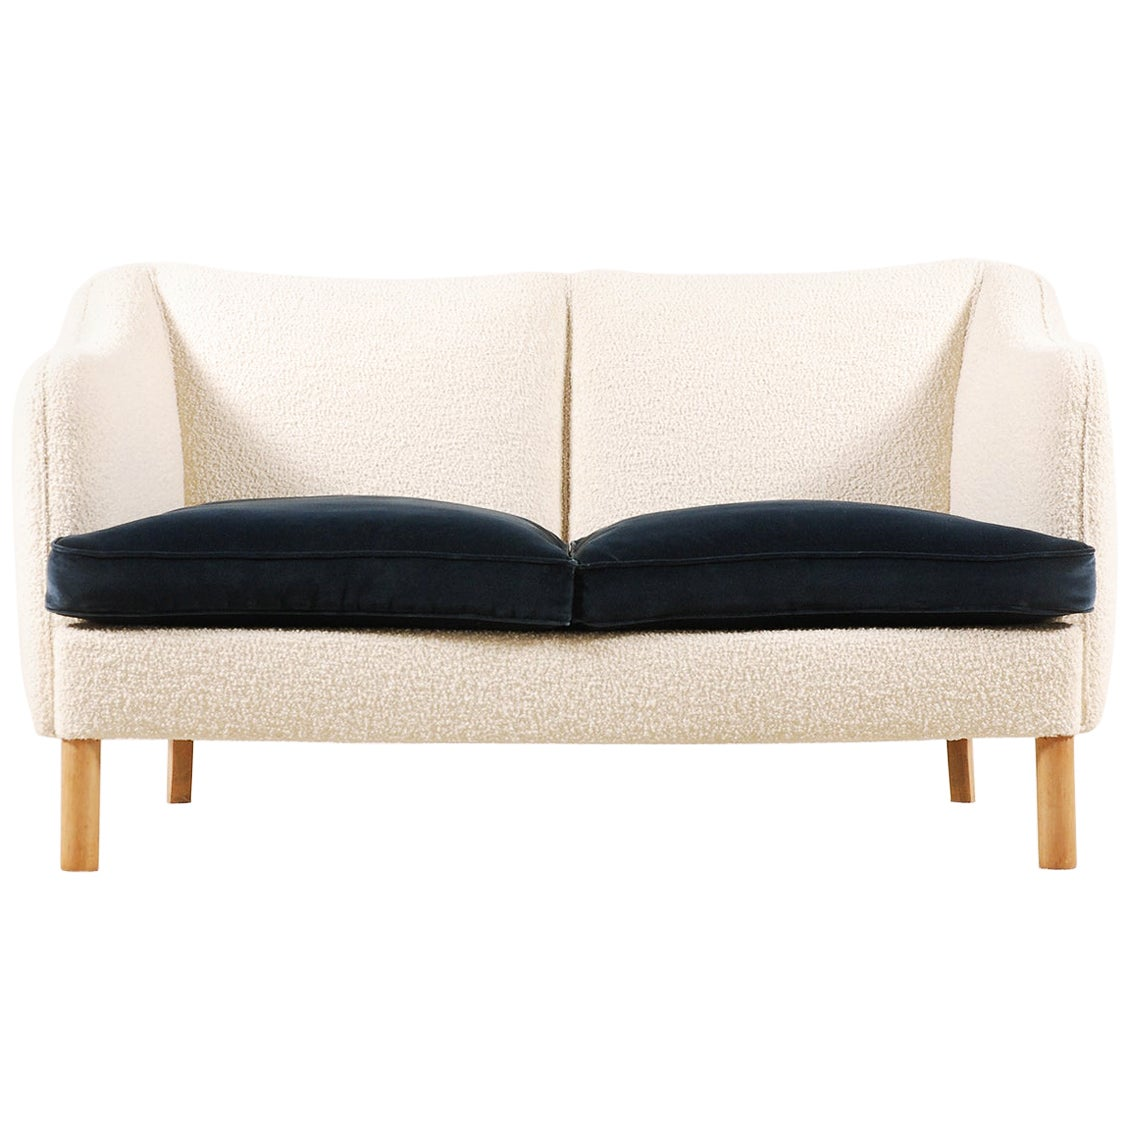 Two-Seat Sofa, Denmark, 1950, New Upholstery